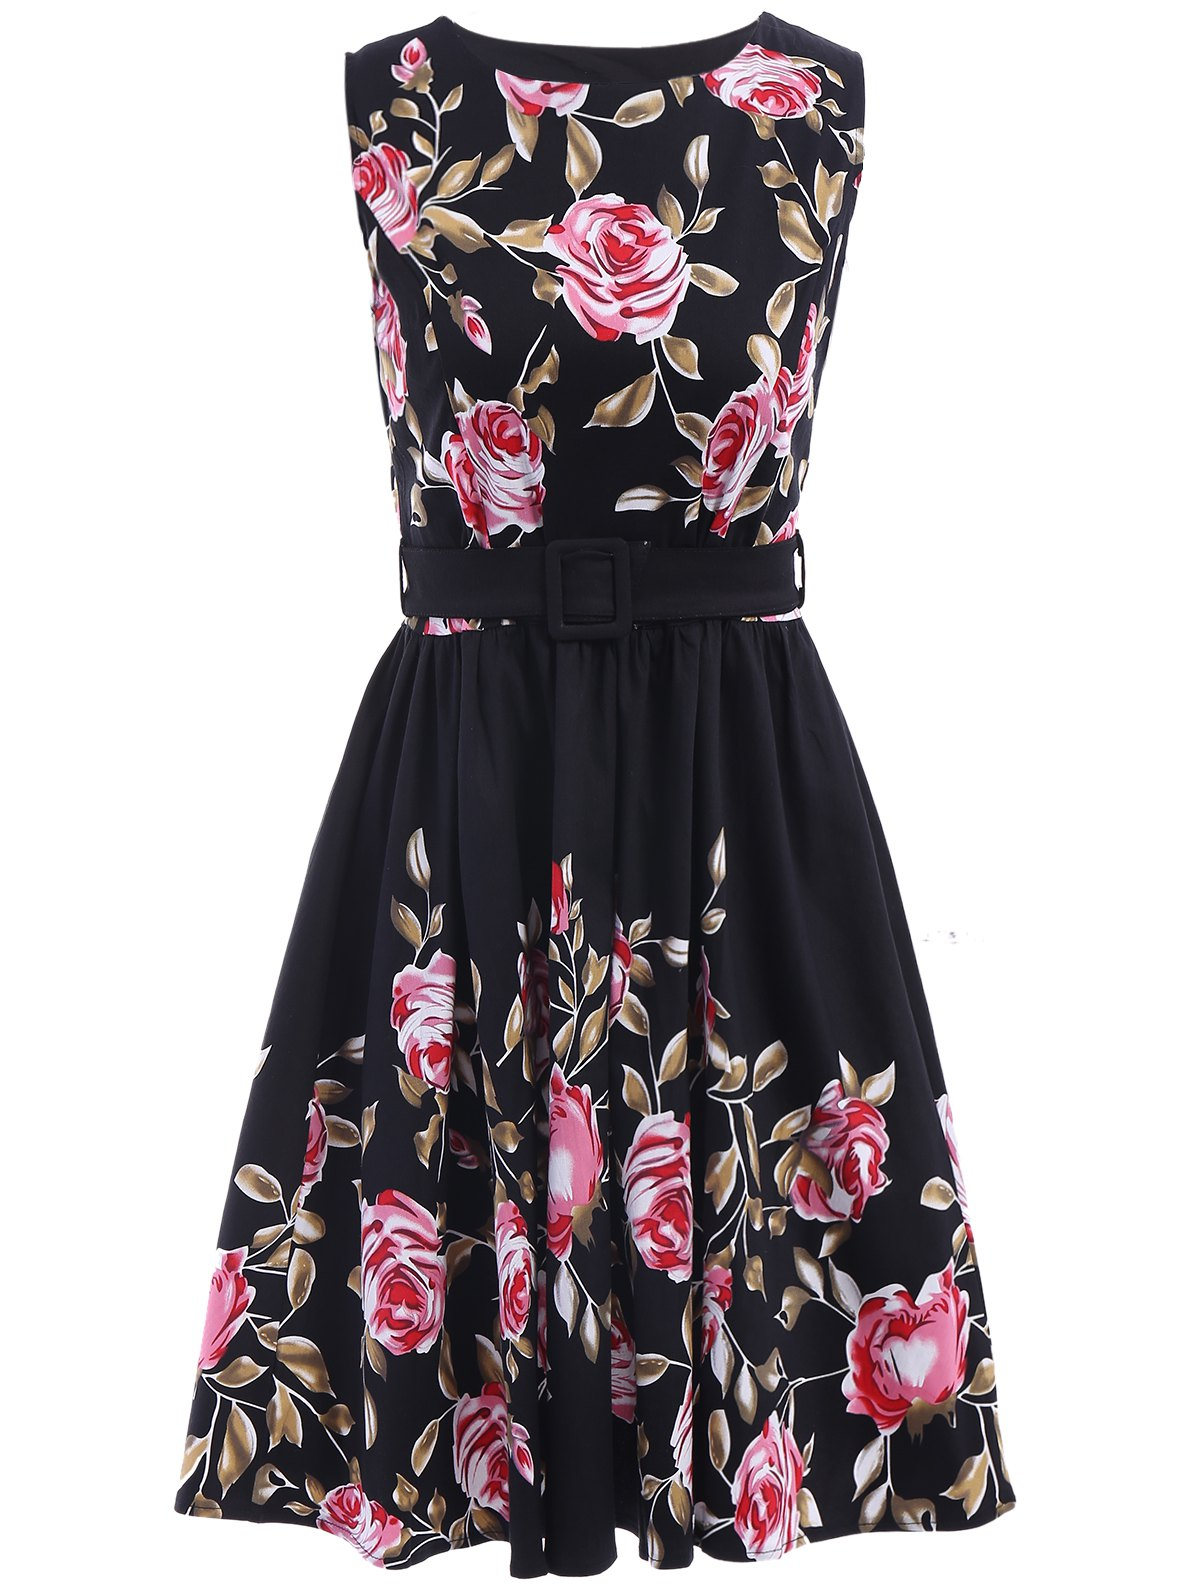 Fashionable Round Neck Sleeveless Floral Print Dress For Women